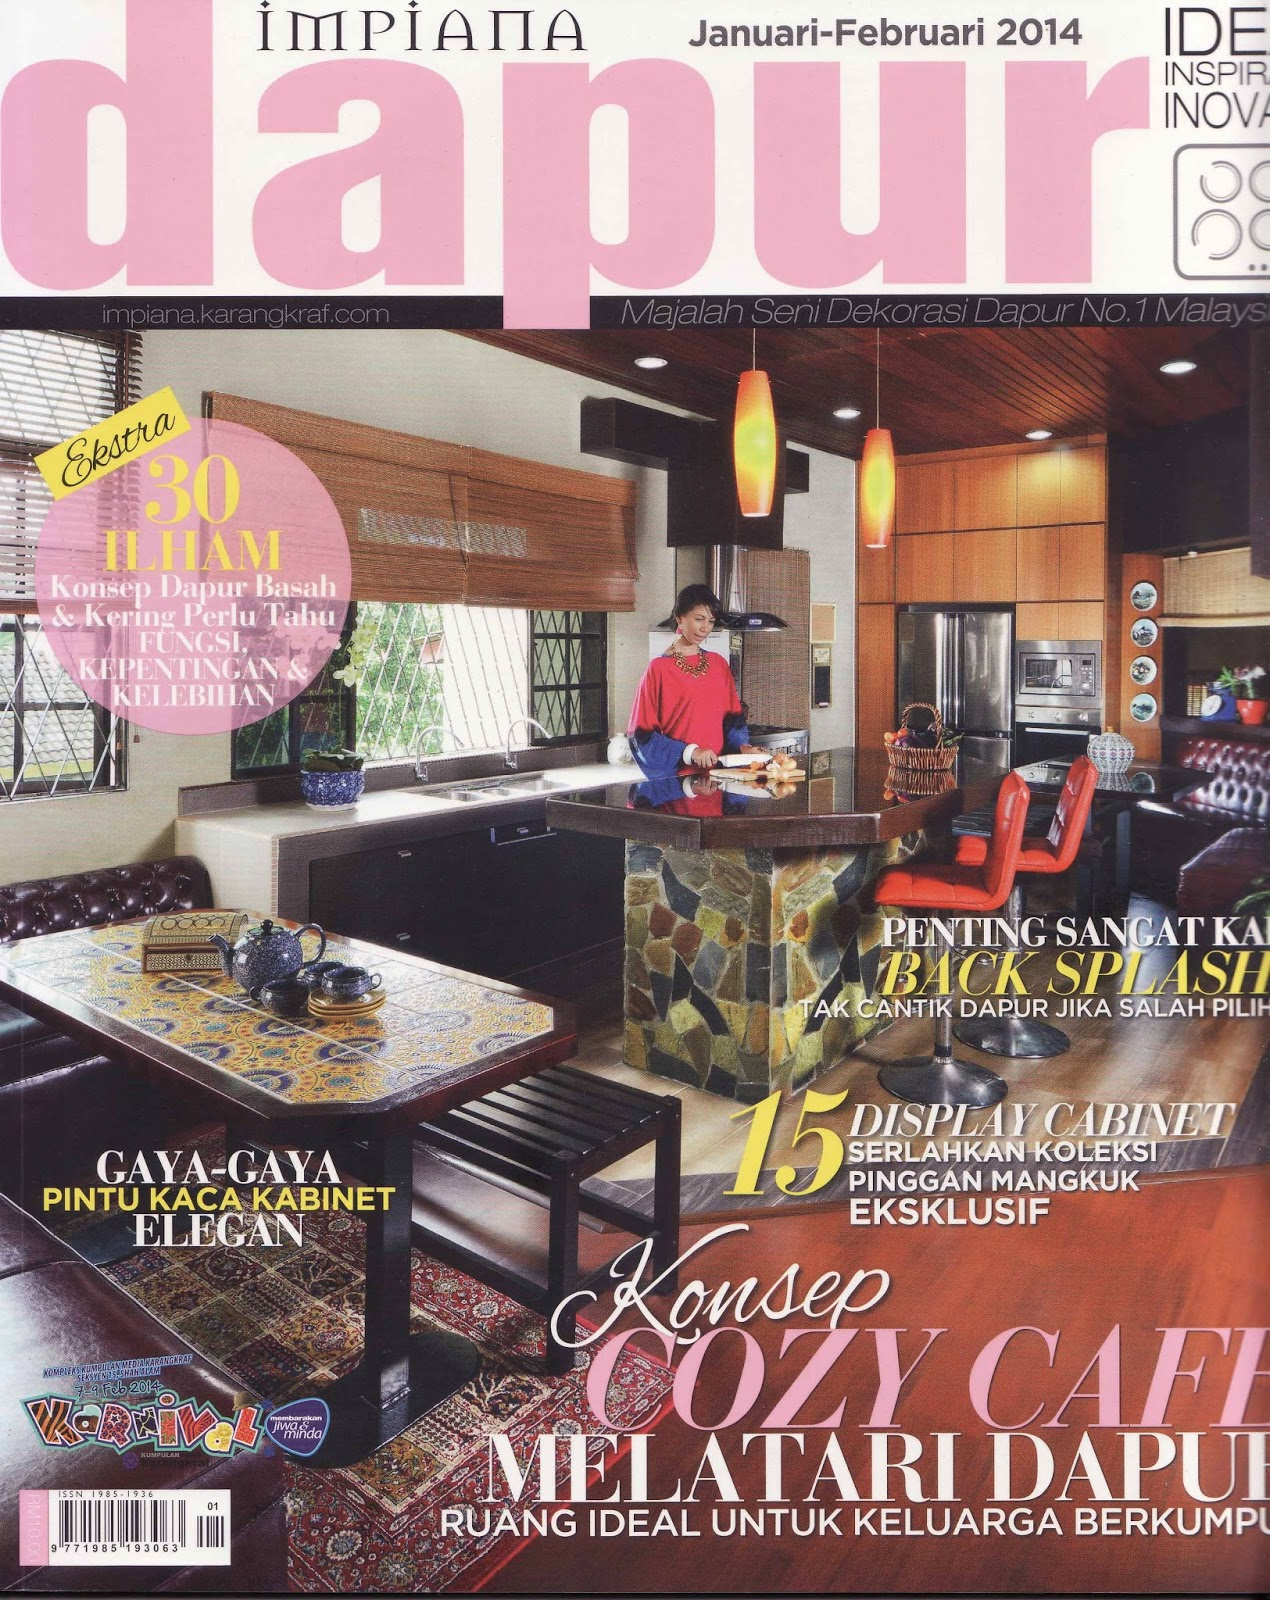 Oh Mai Wedding In Dapur Impiana Magazine Jan Feb 14 Edition